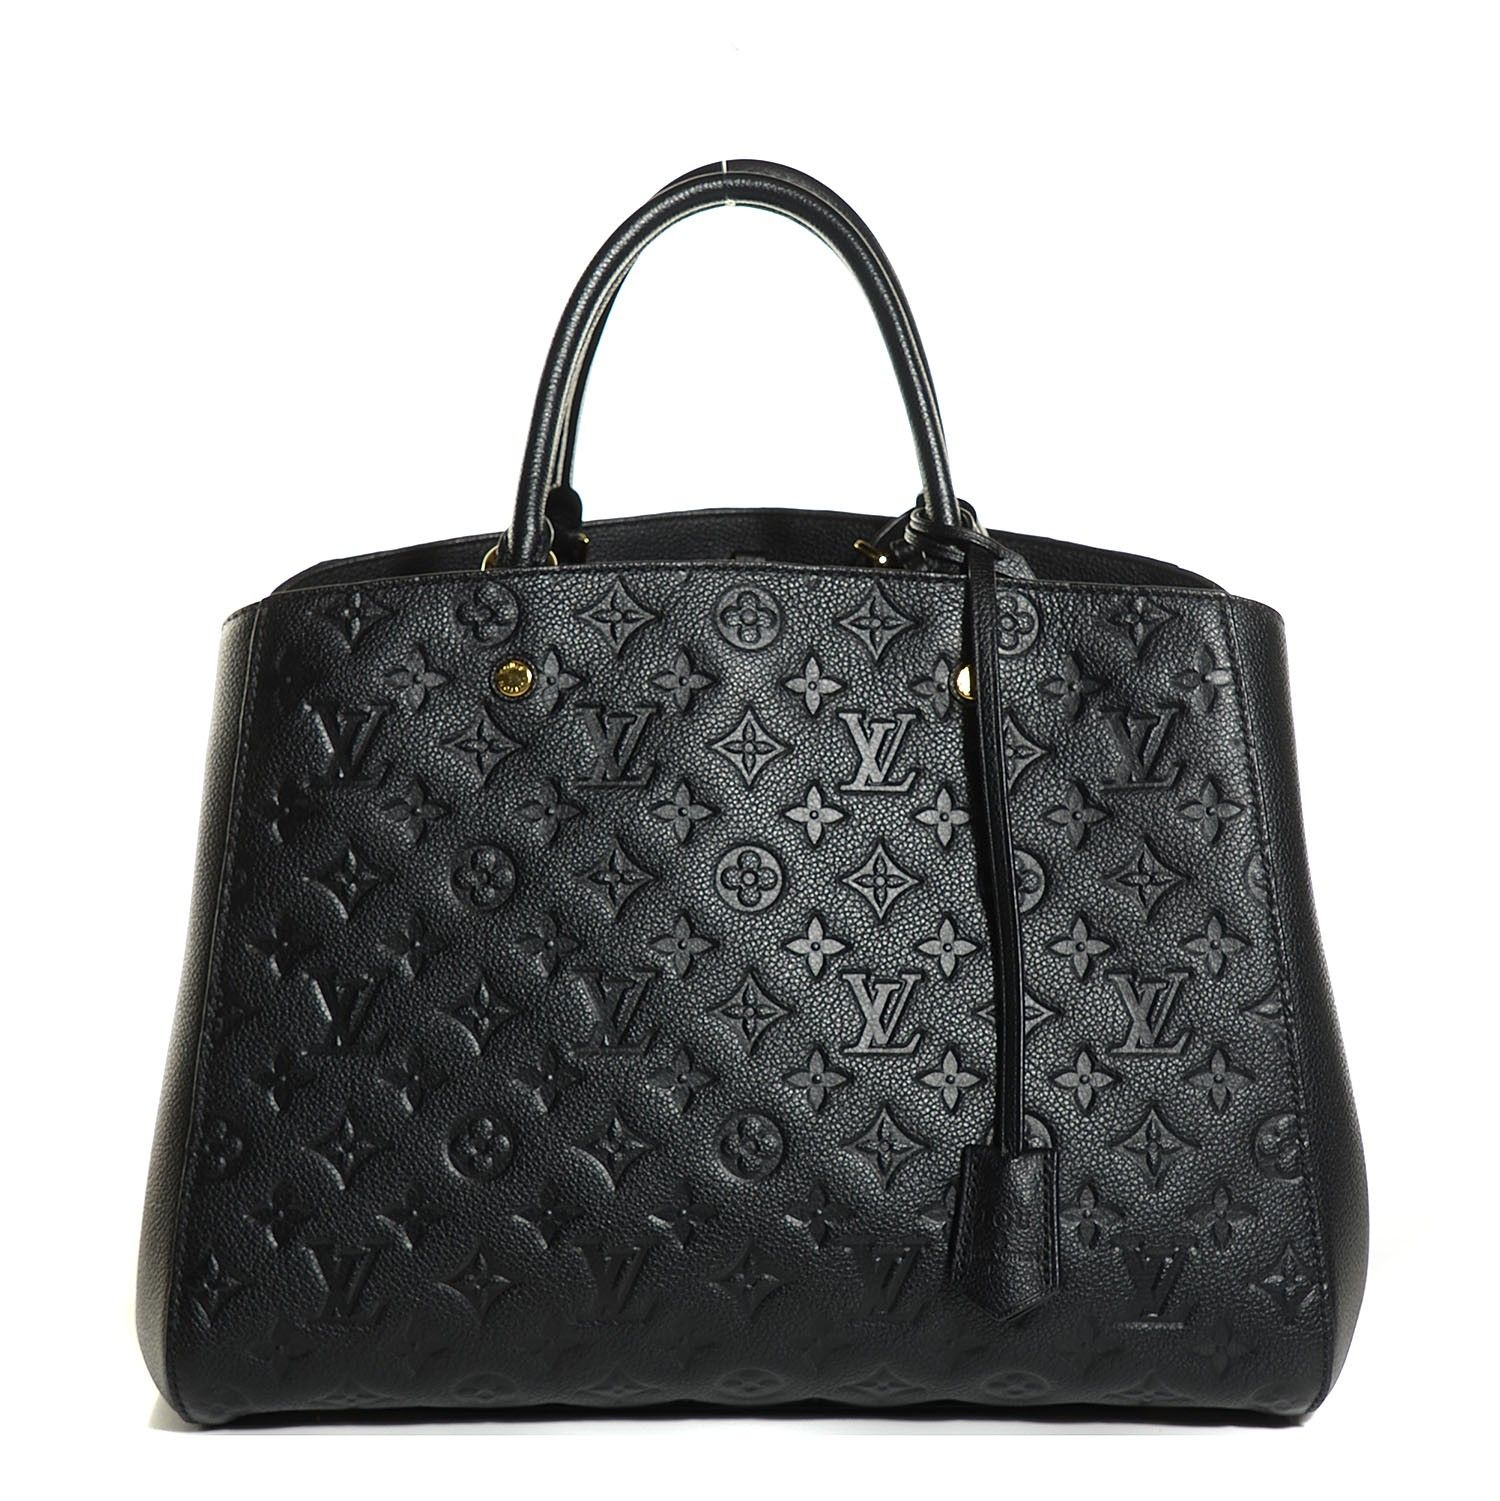 aaa5cd9f309e This is an authentic LOUIS VUITTON Empreinte Montaigne GM in Noir Black.  This chic tote is crafted of Louis Vuitton monogram embossed leather in  black.